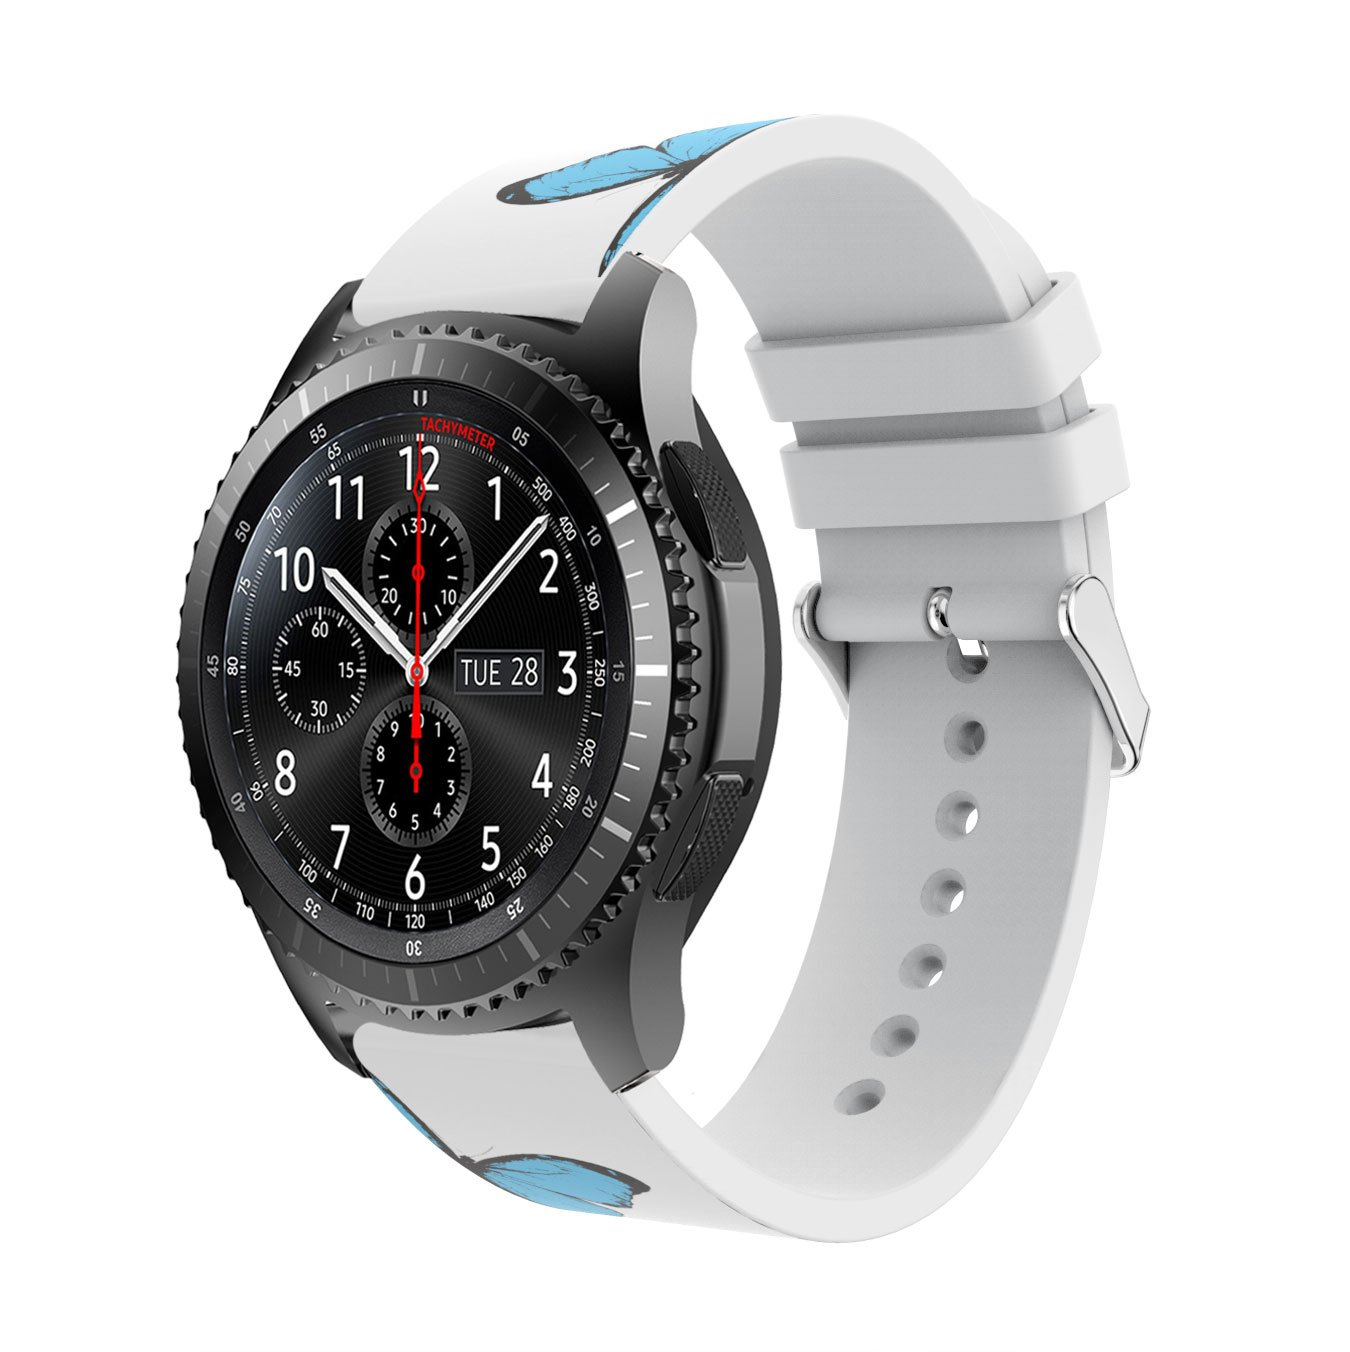 Amazon.com: Samsung Gear S3 Band Reakle Silicone Smart Watch ...